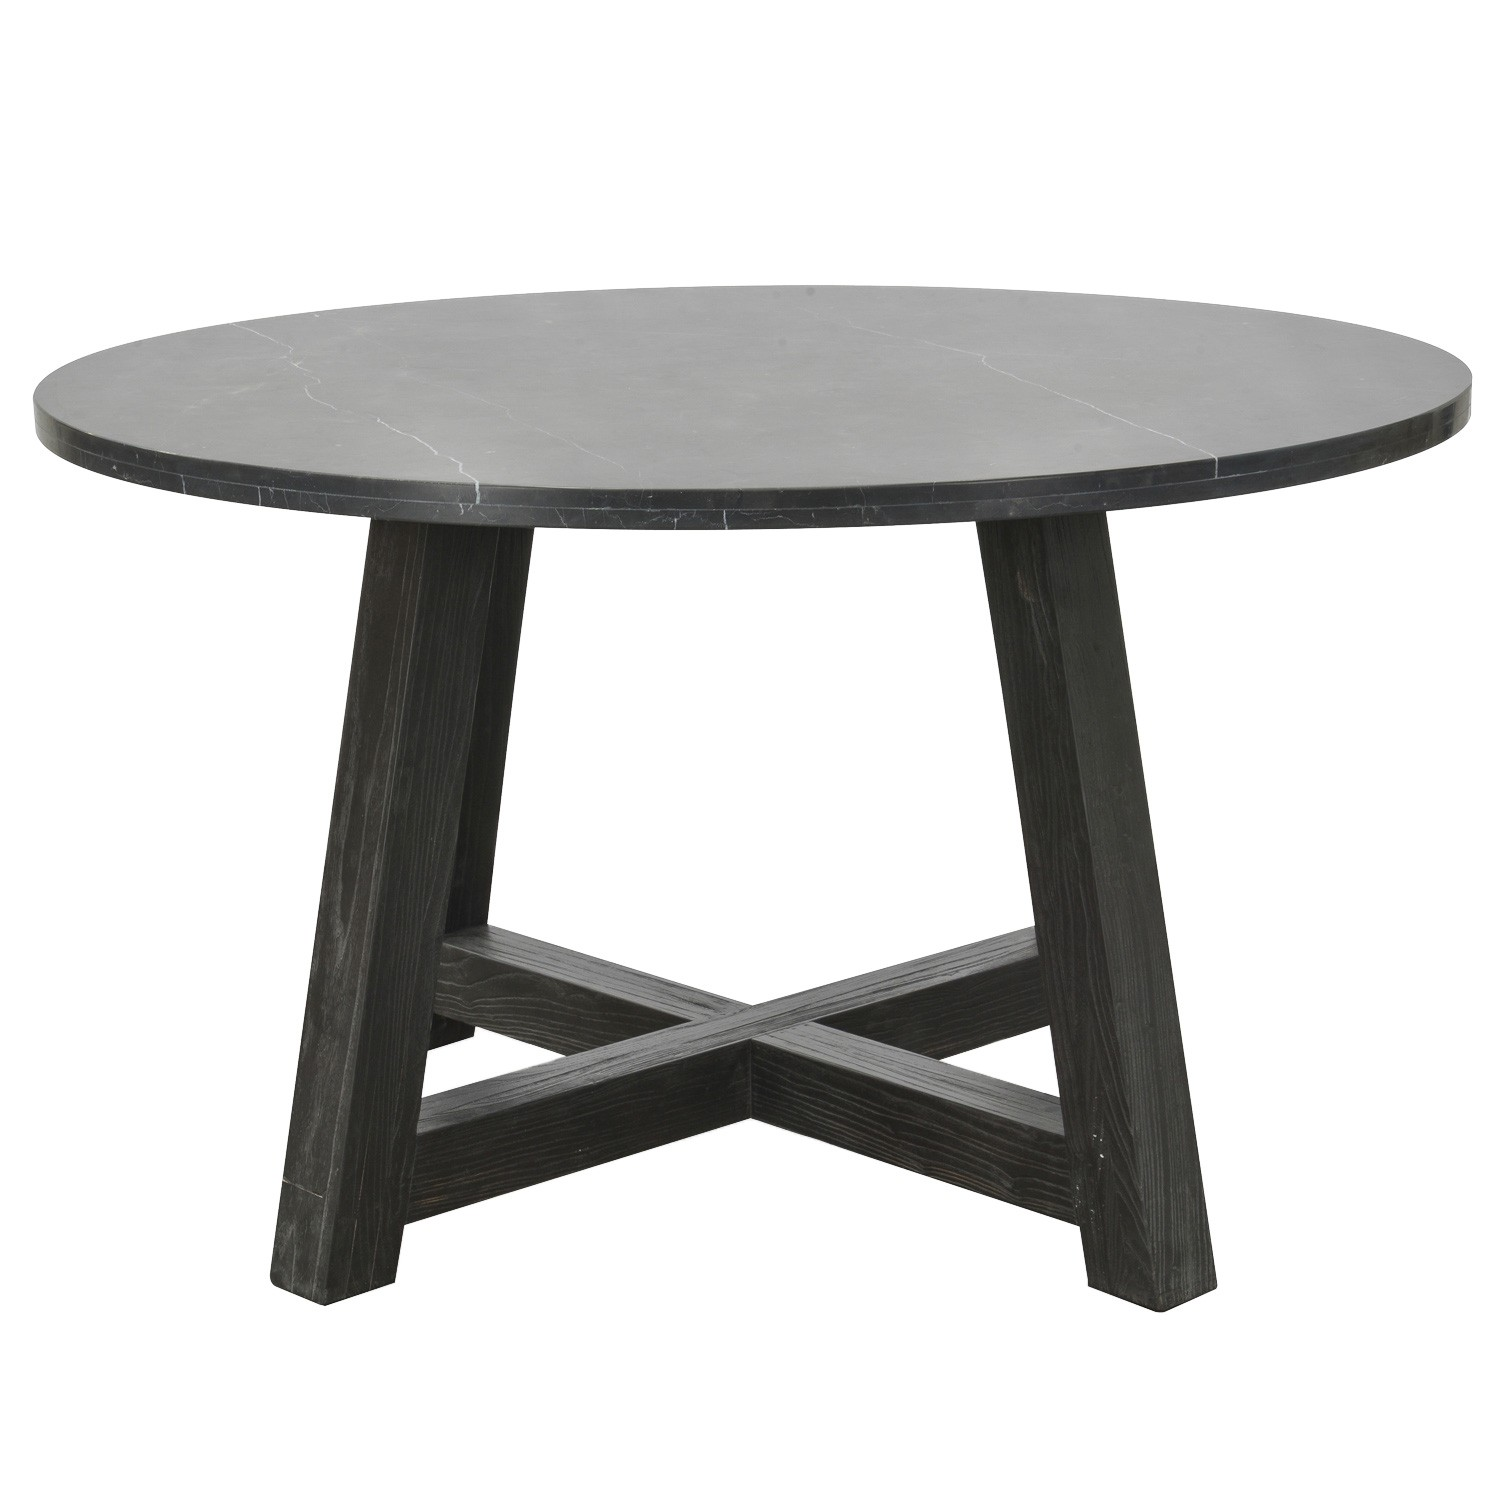 Arlanda Marble Top Round Ding Table, 130cm, Black